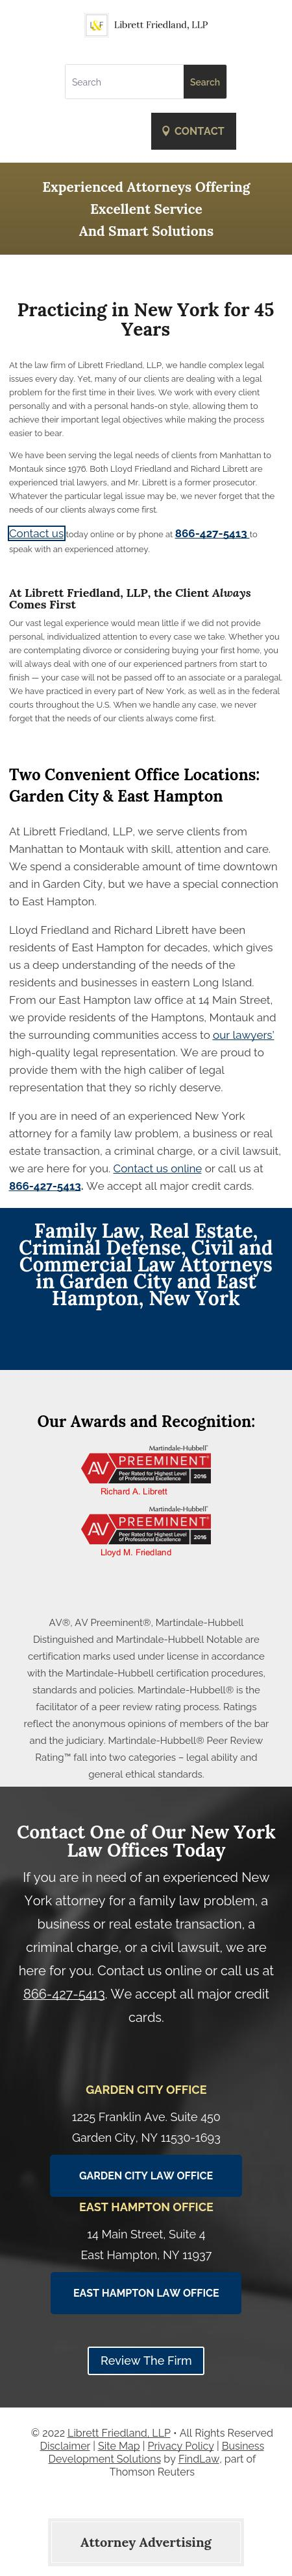 Librett Friedland & Lieberman, LLP - East Hampton NY Lawyers